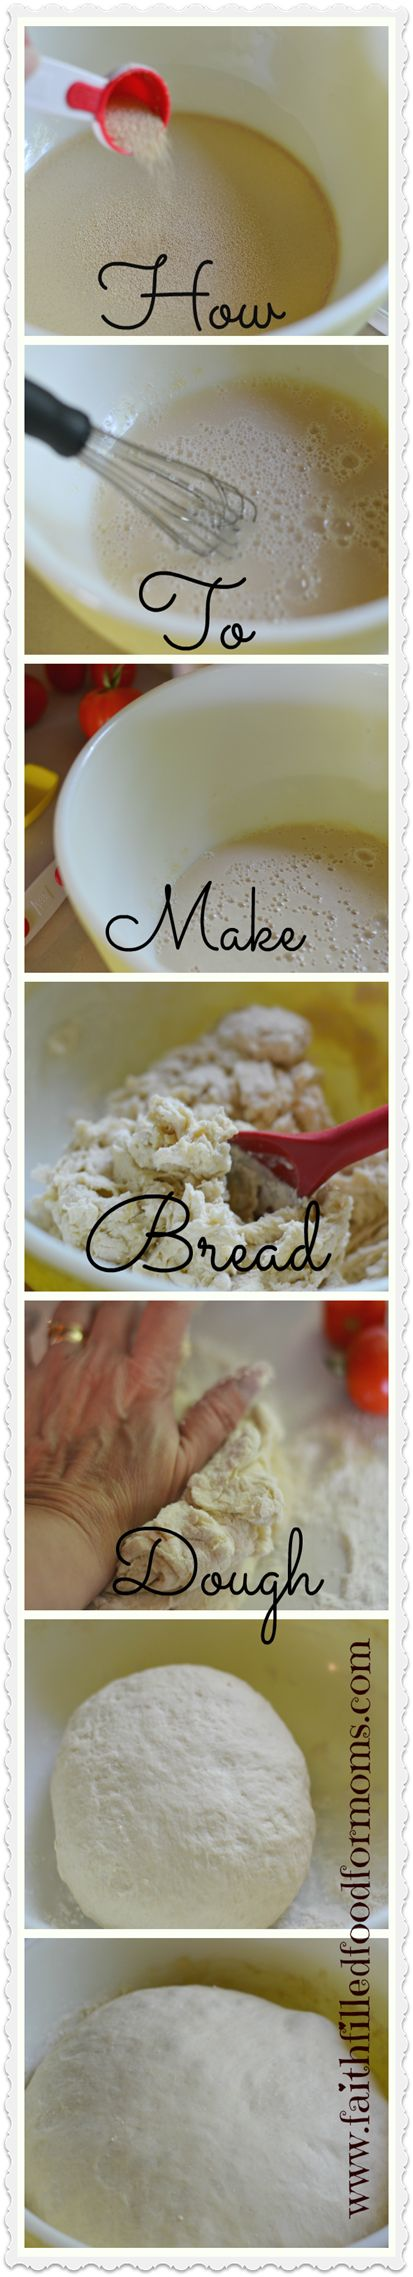 How to Make Bread Dough ~ Make a ton of recipes with this one simple bread dough!